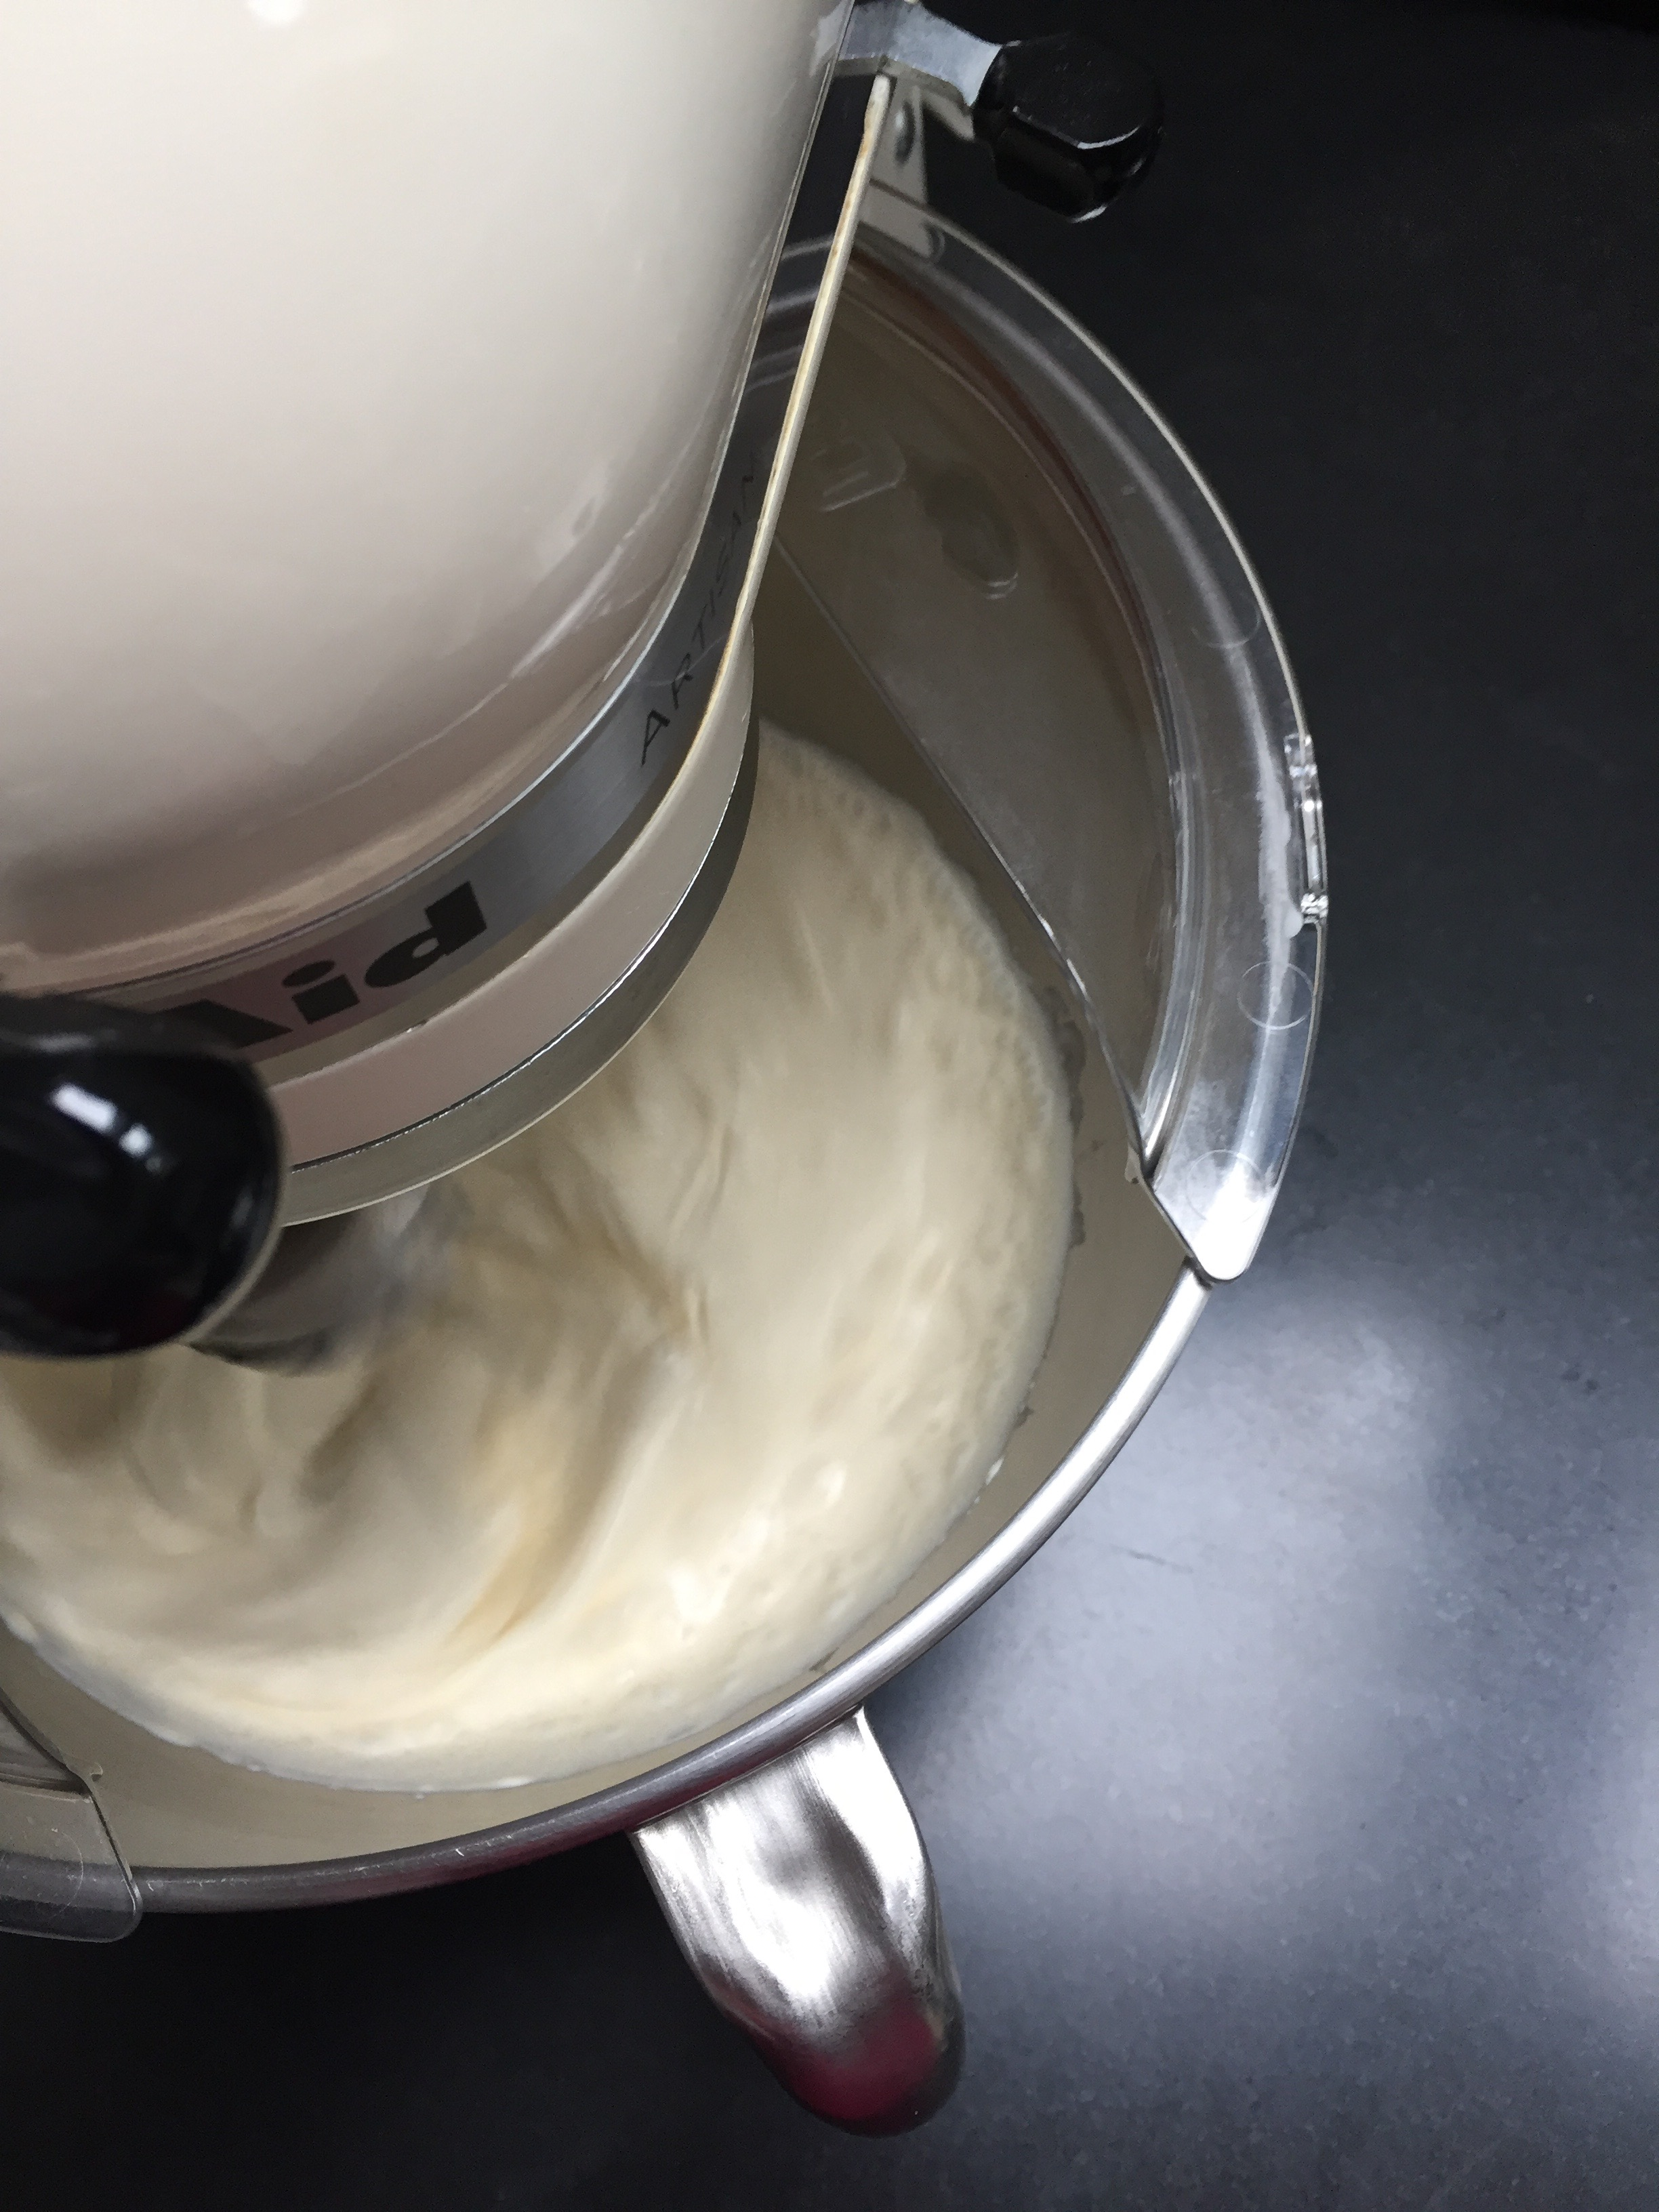 1. Whipping the Cream